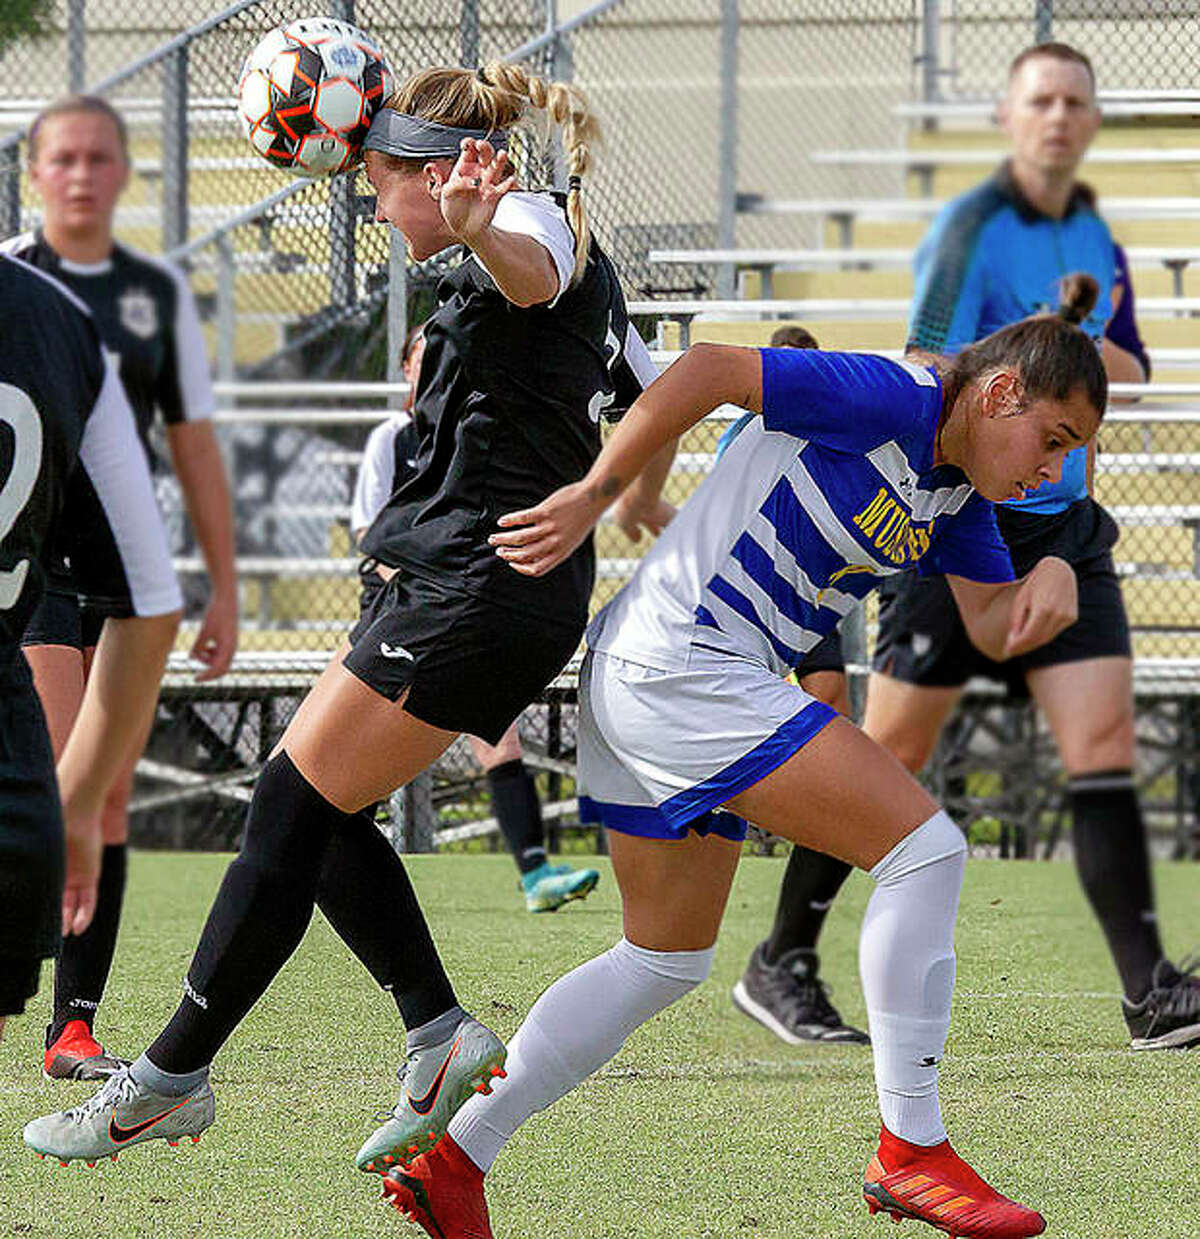 LCCC's Sydney Schmidt, left, heads the ball away as Monroe's Luana Grabias heads the opposite direction Friday in the semifinals of the NJCAA National Tournament.